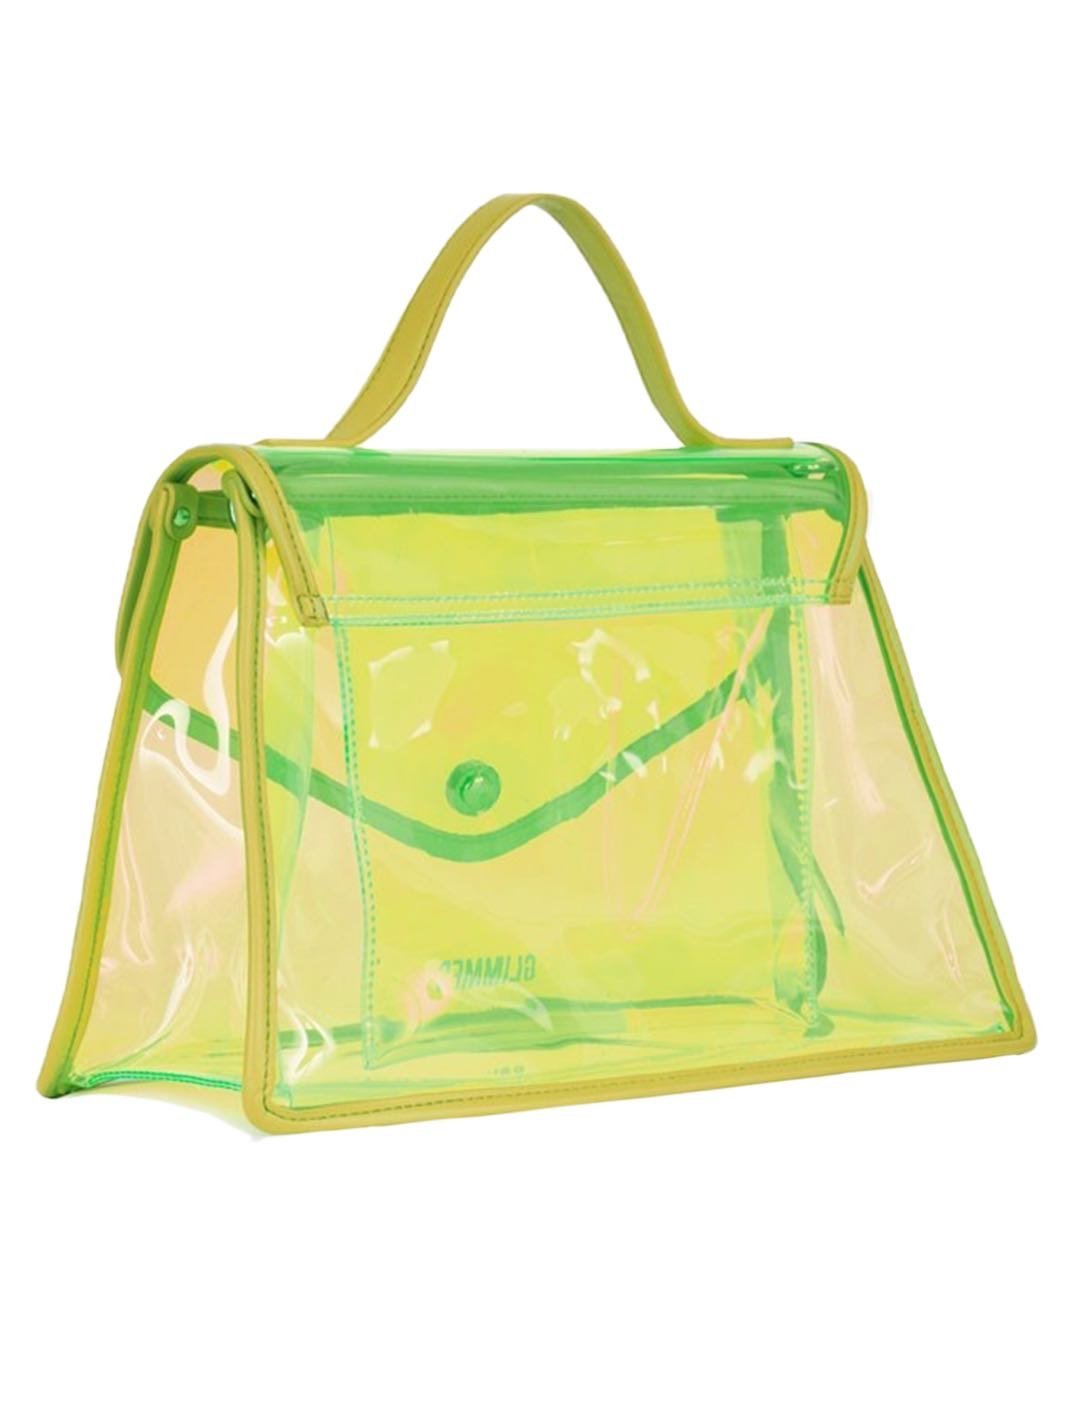 Layla Beach-Bag PVC Yellow - The Bobby Boga